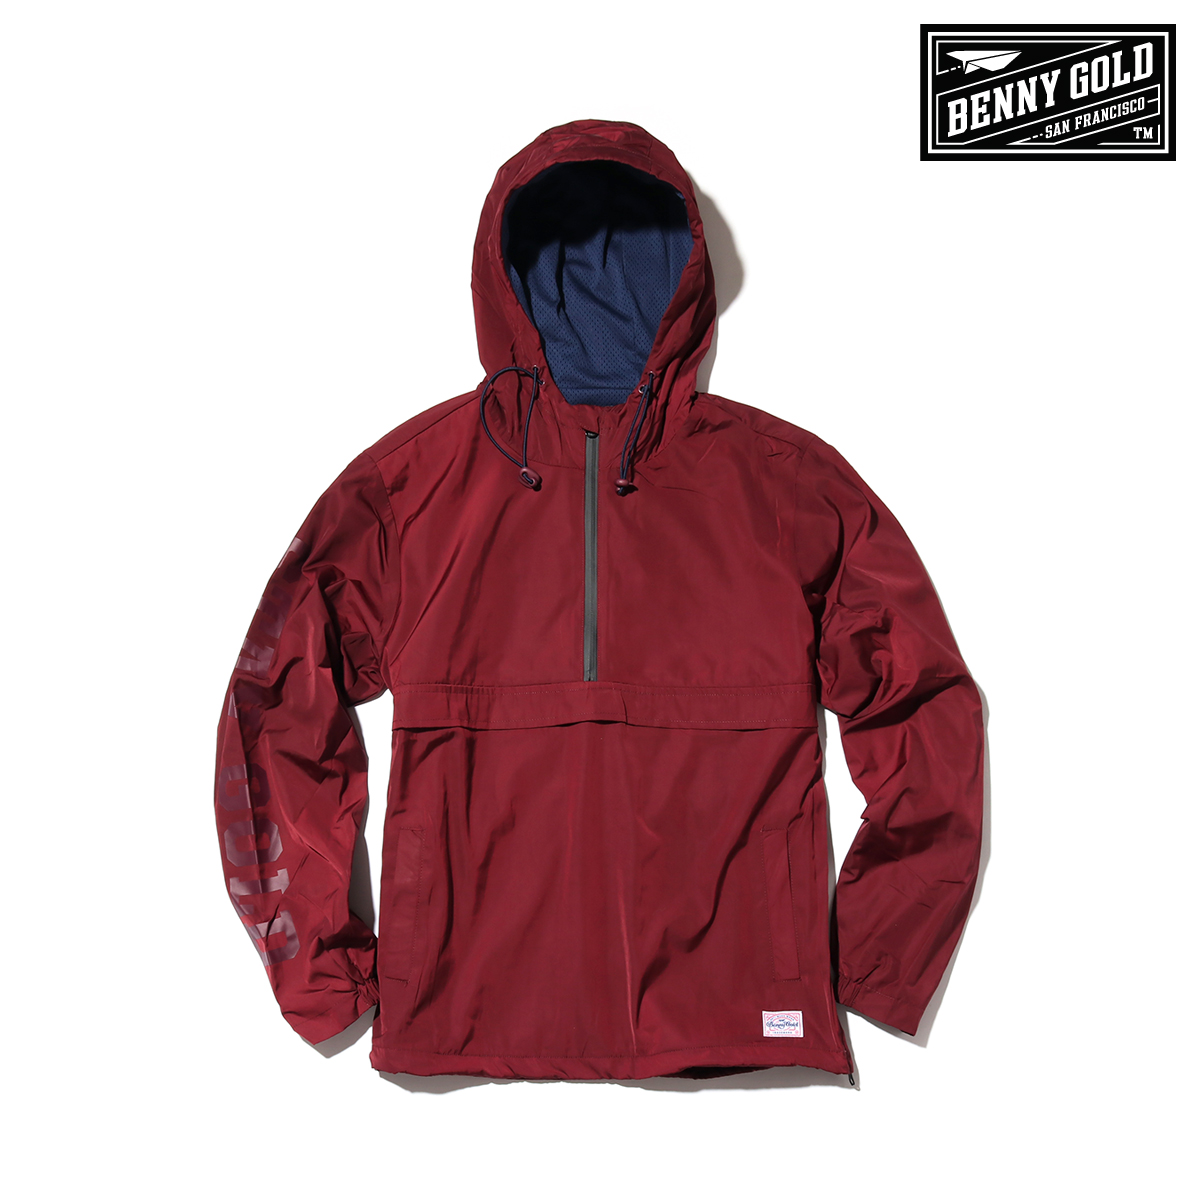 BENNY GOLD Stay Gold Anorak Jacket (2Color) 【メンズサイズ】【18FW-I】【30】【sale0123】